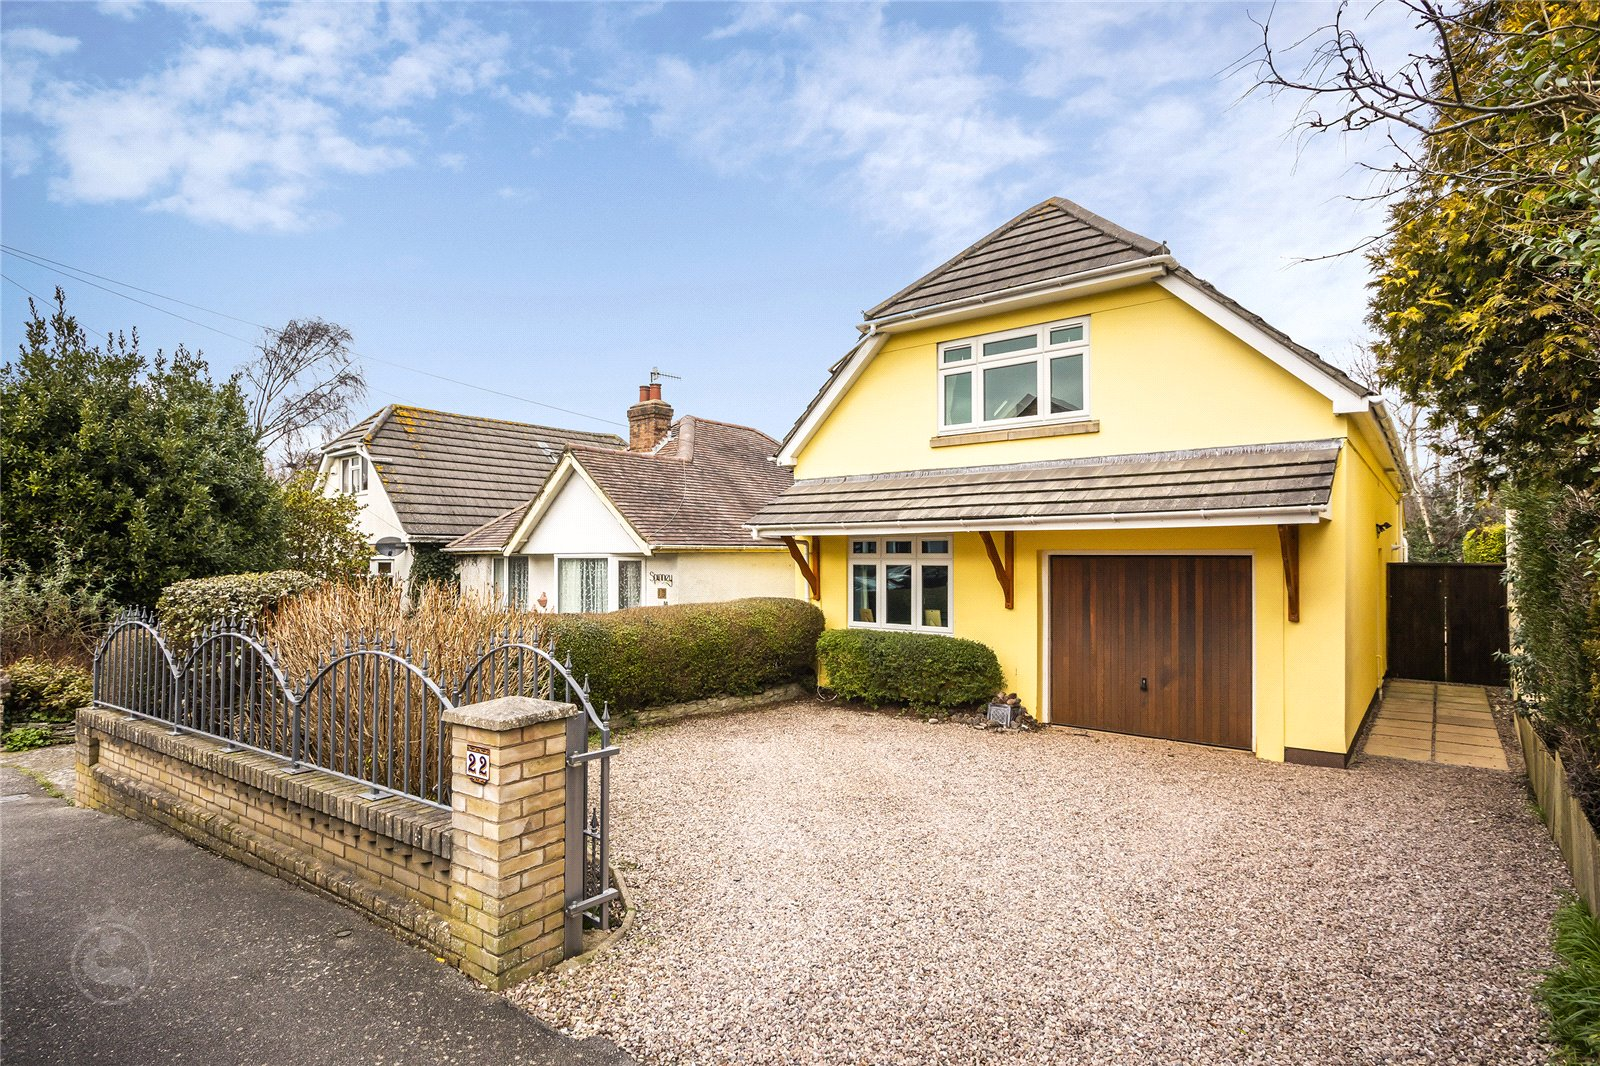 4 bed house for sale in Whitecliff, BH14